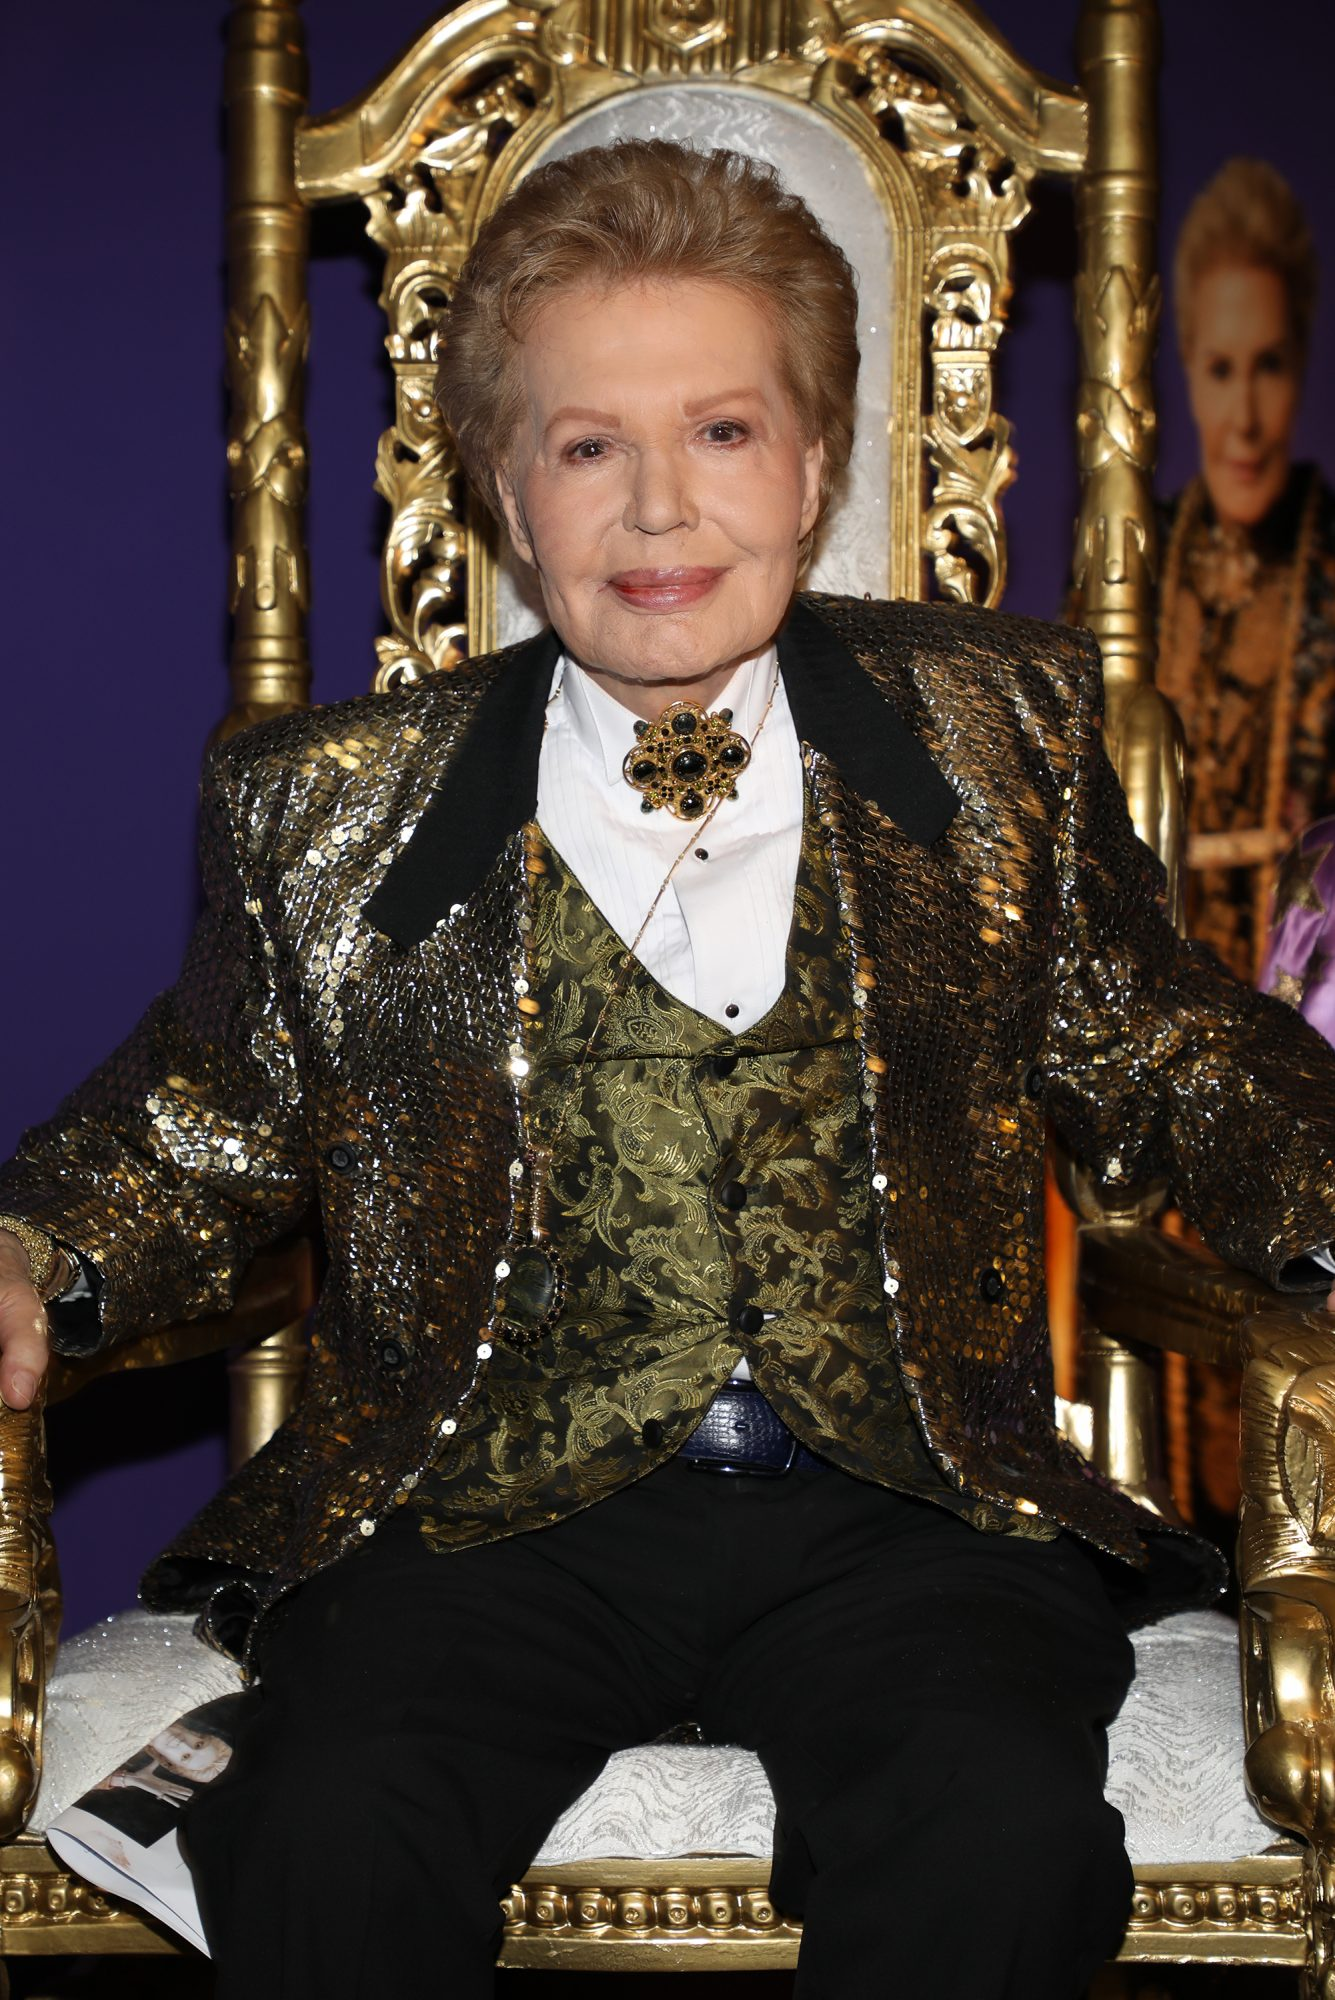 Walter Mercado Attends The Opening Of Mucho, Mucho Amor: 50 Years of Walter Mercado